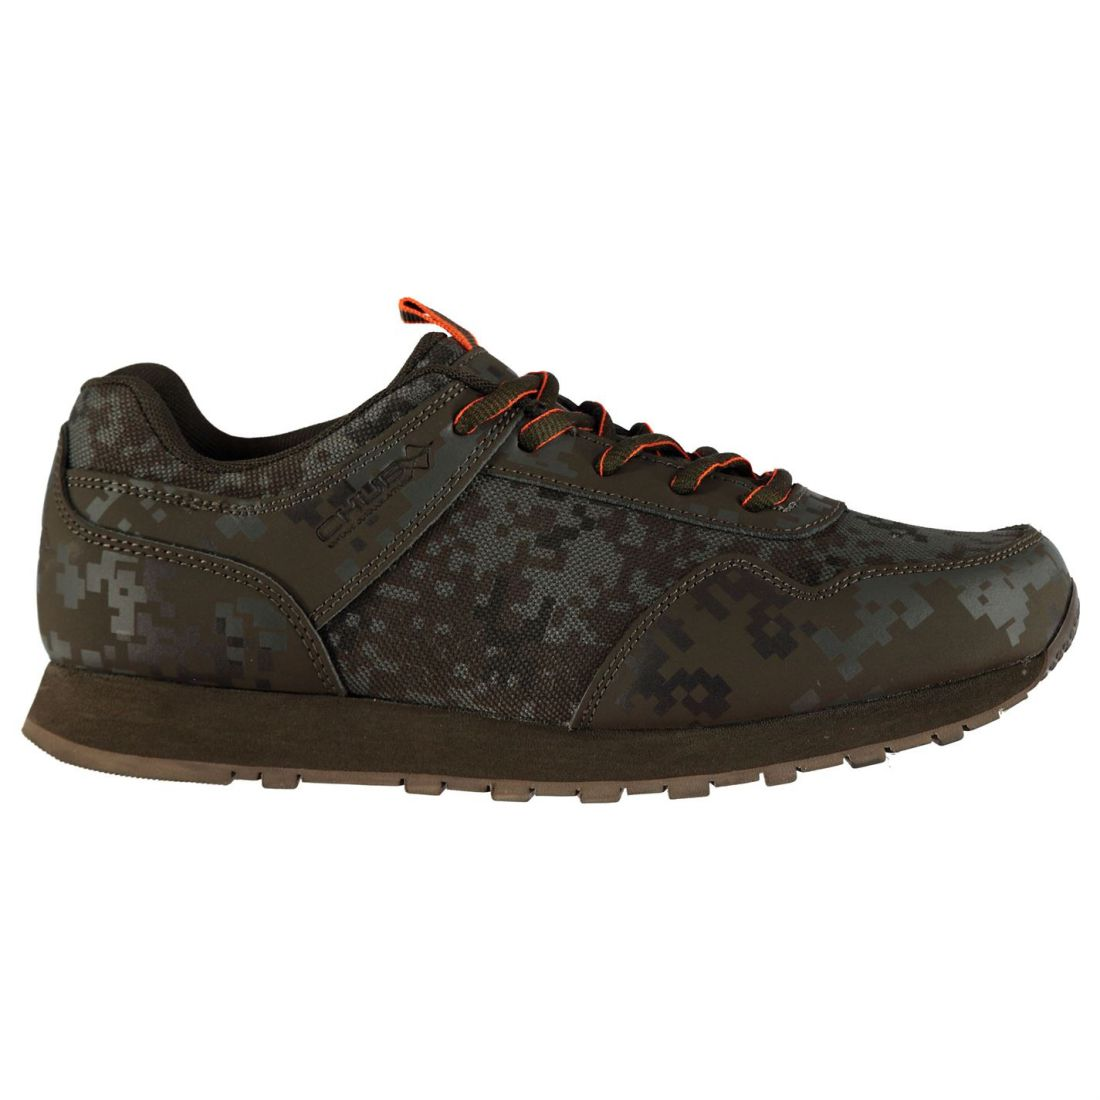 Chub Vantage Camo Sneakers Mens Gents Rods Laces Fastened Water Repellent